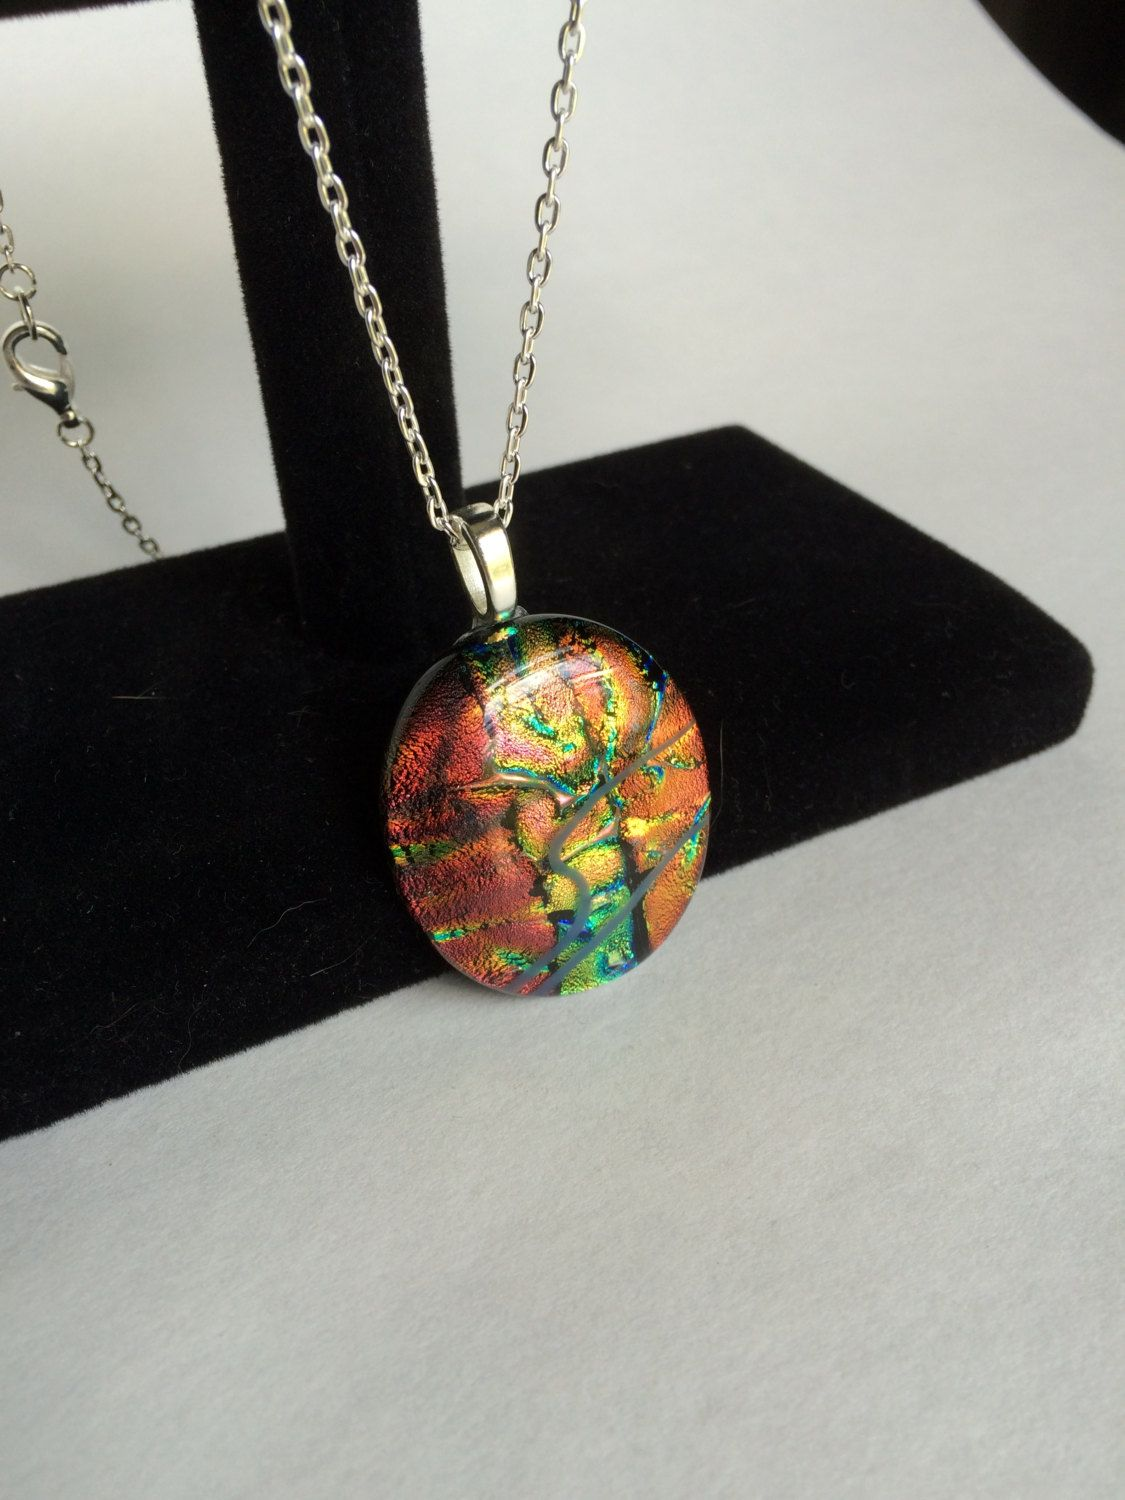 Oval Orange, Yellow, and Green Dichroic Glass Pendant by starlingstudiosix on Etsy